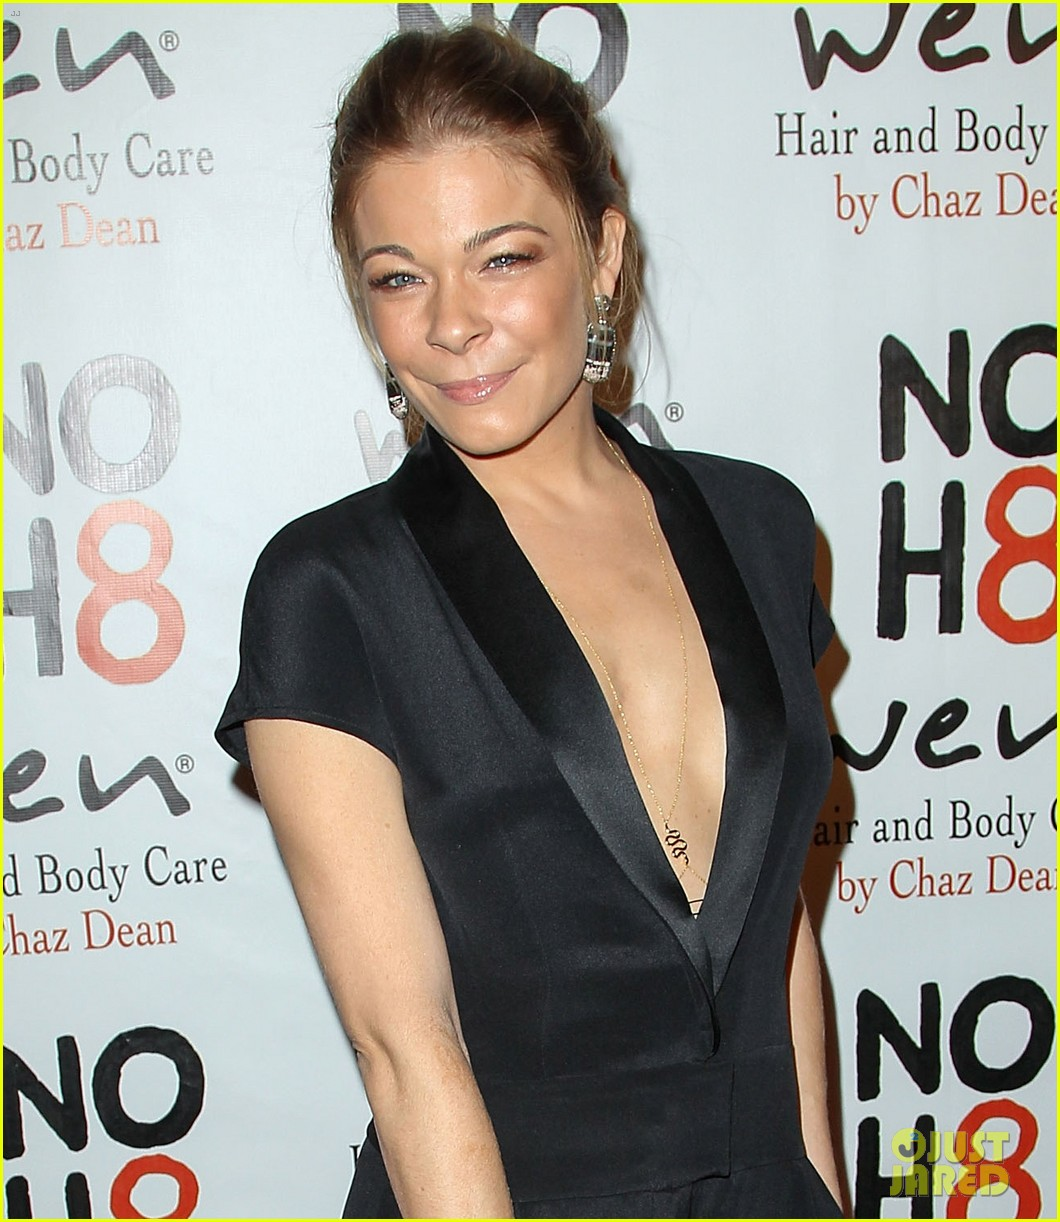 leann rimes eddie cibrian noh8 party kisses 042775164